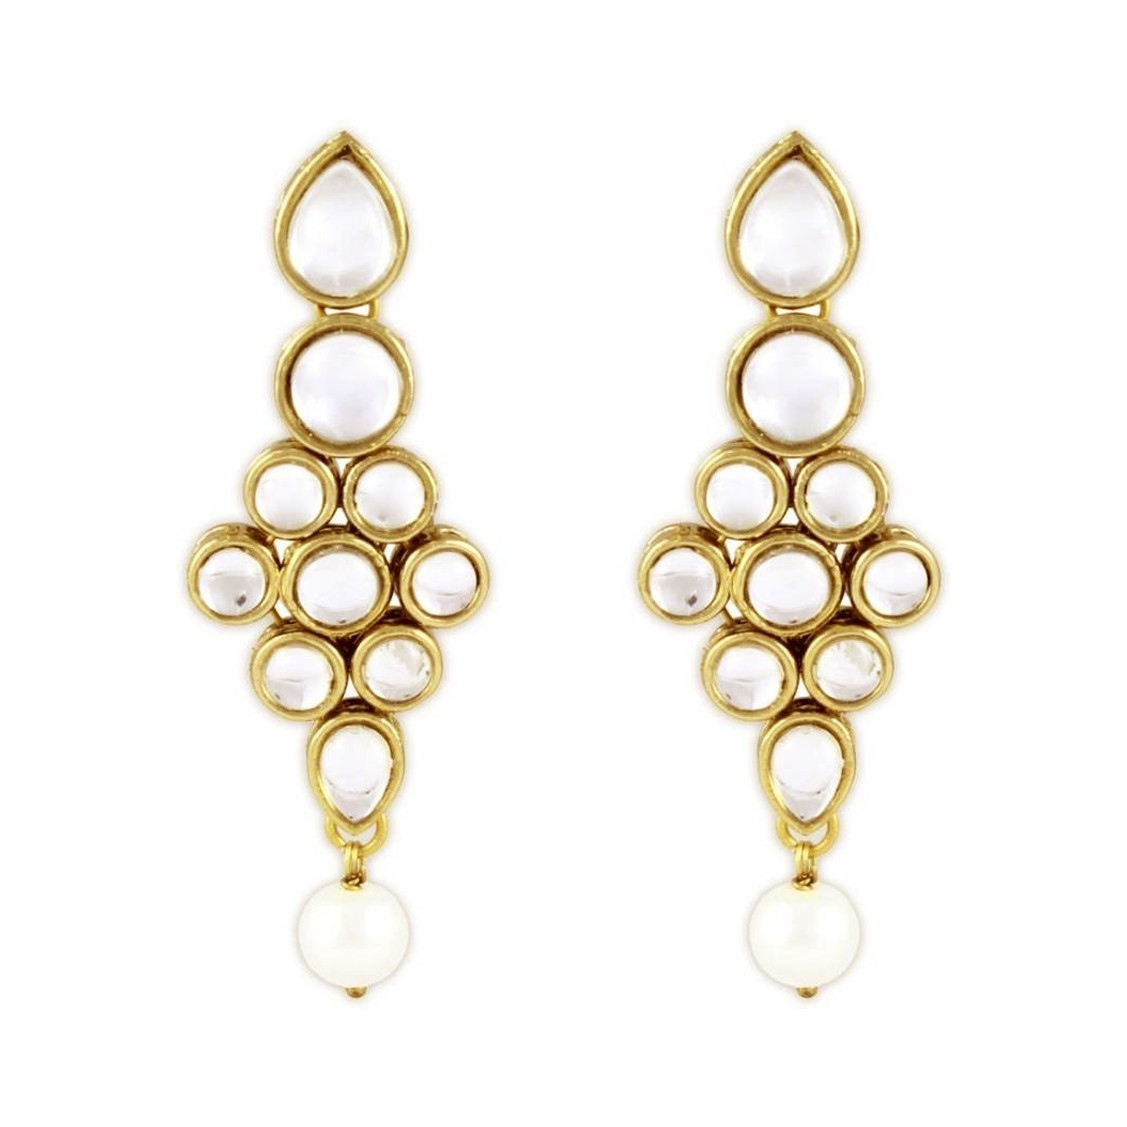 Kundan Stone Earrings Golden Color For Woman & Girls 01